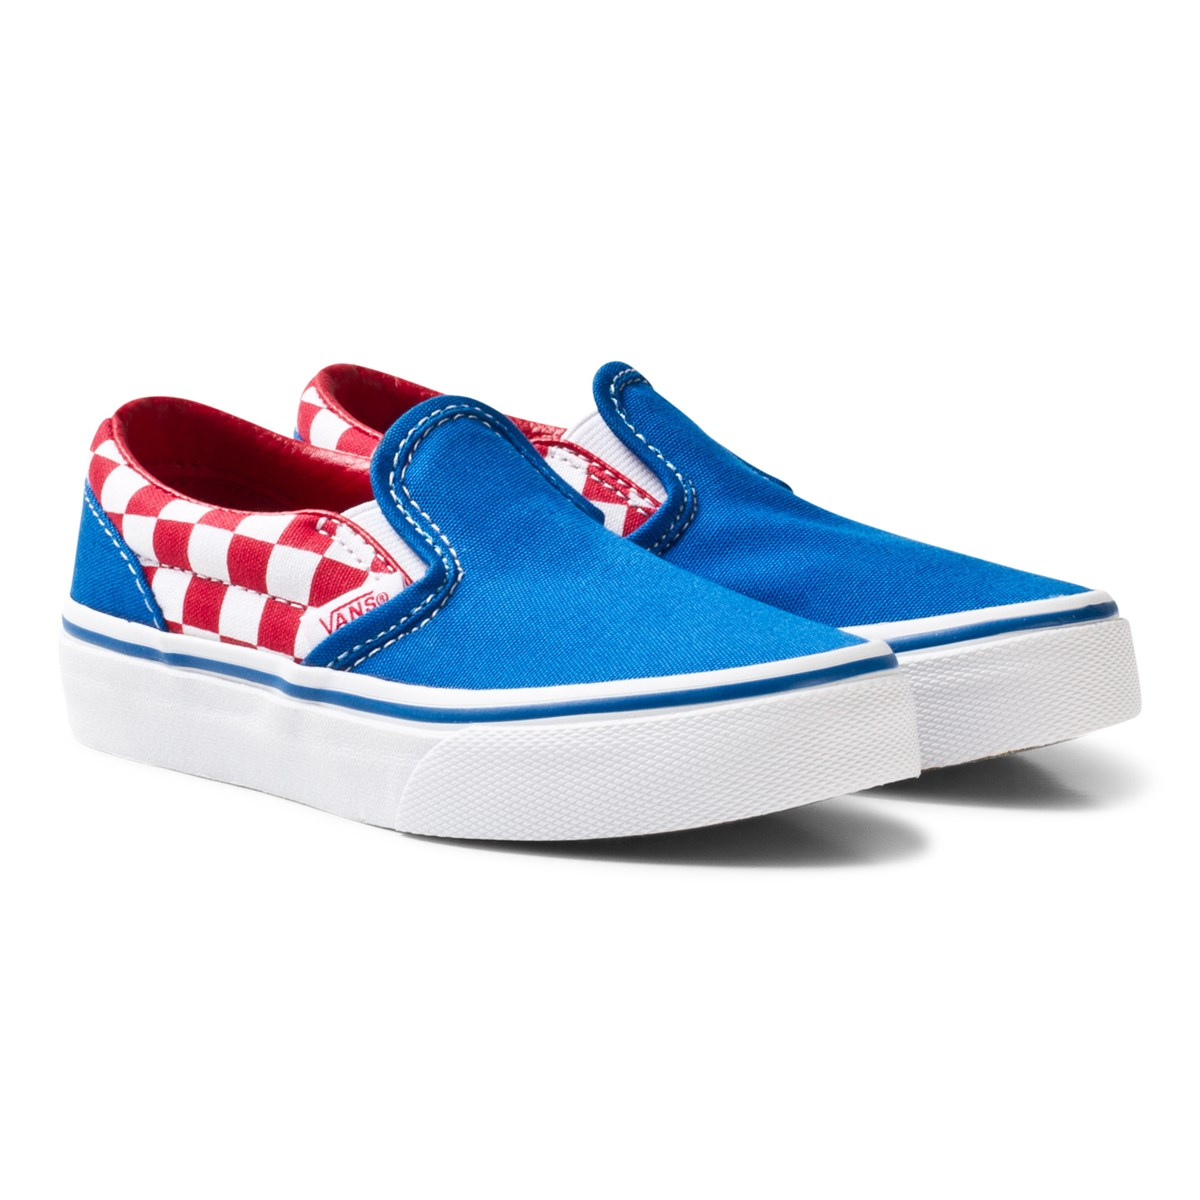 vans blue and red checkerboard classic slip on. Black Bedroom Furniture Sets. Home Design Ideas